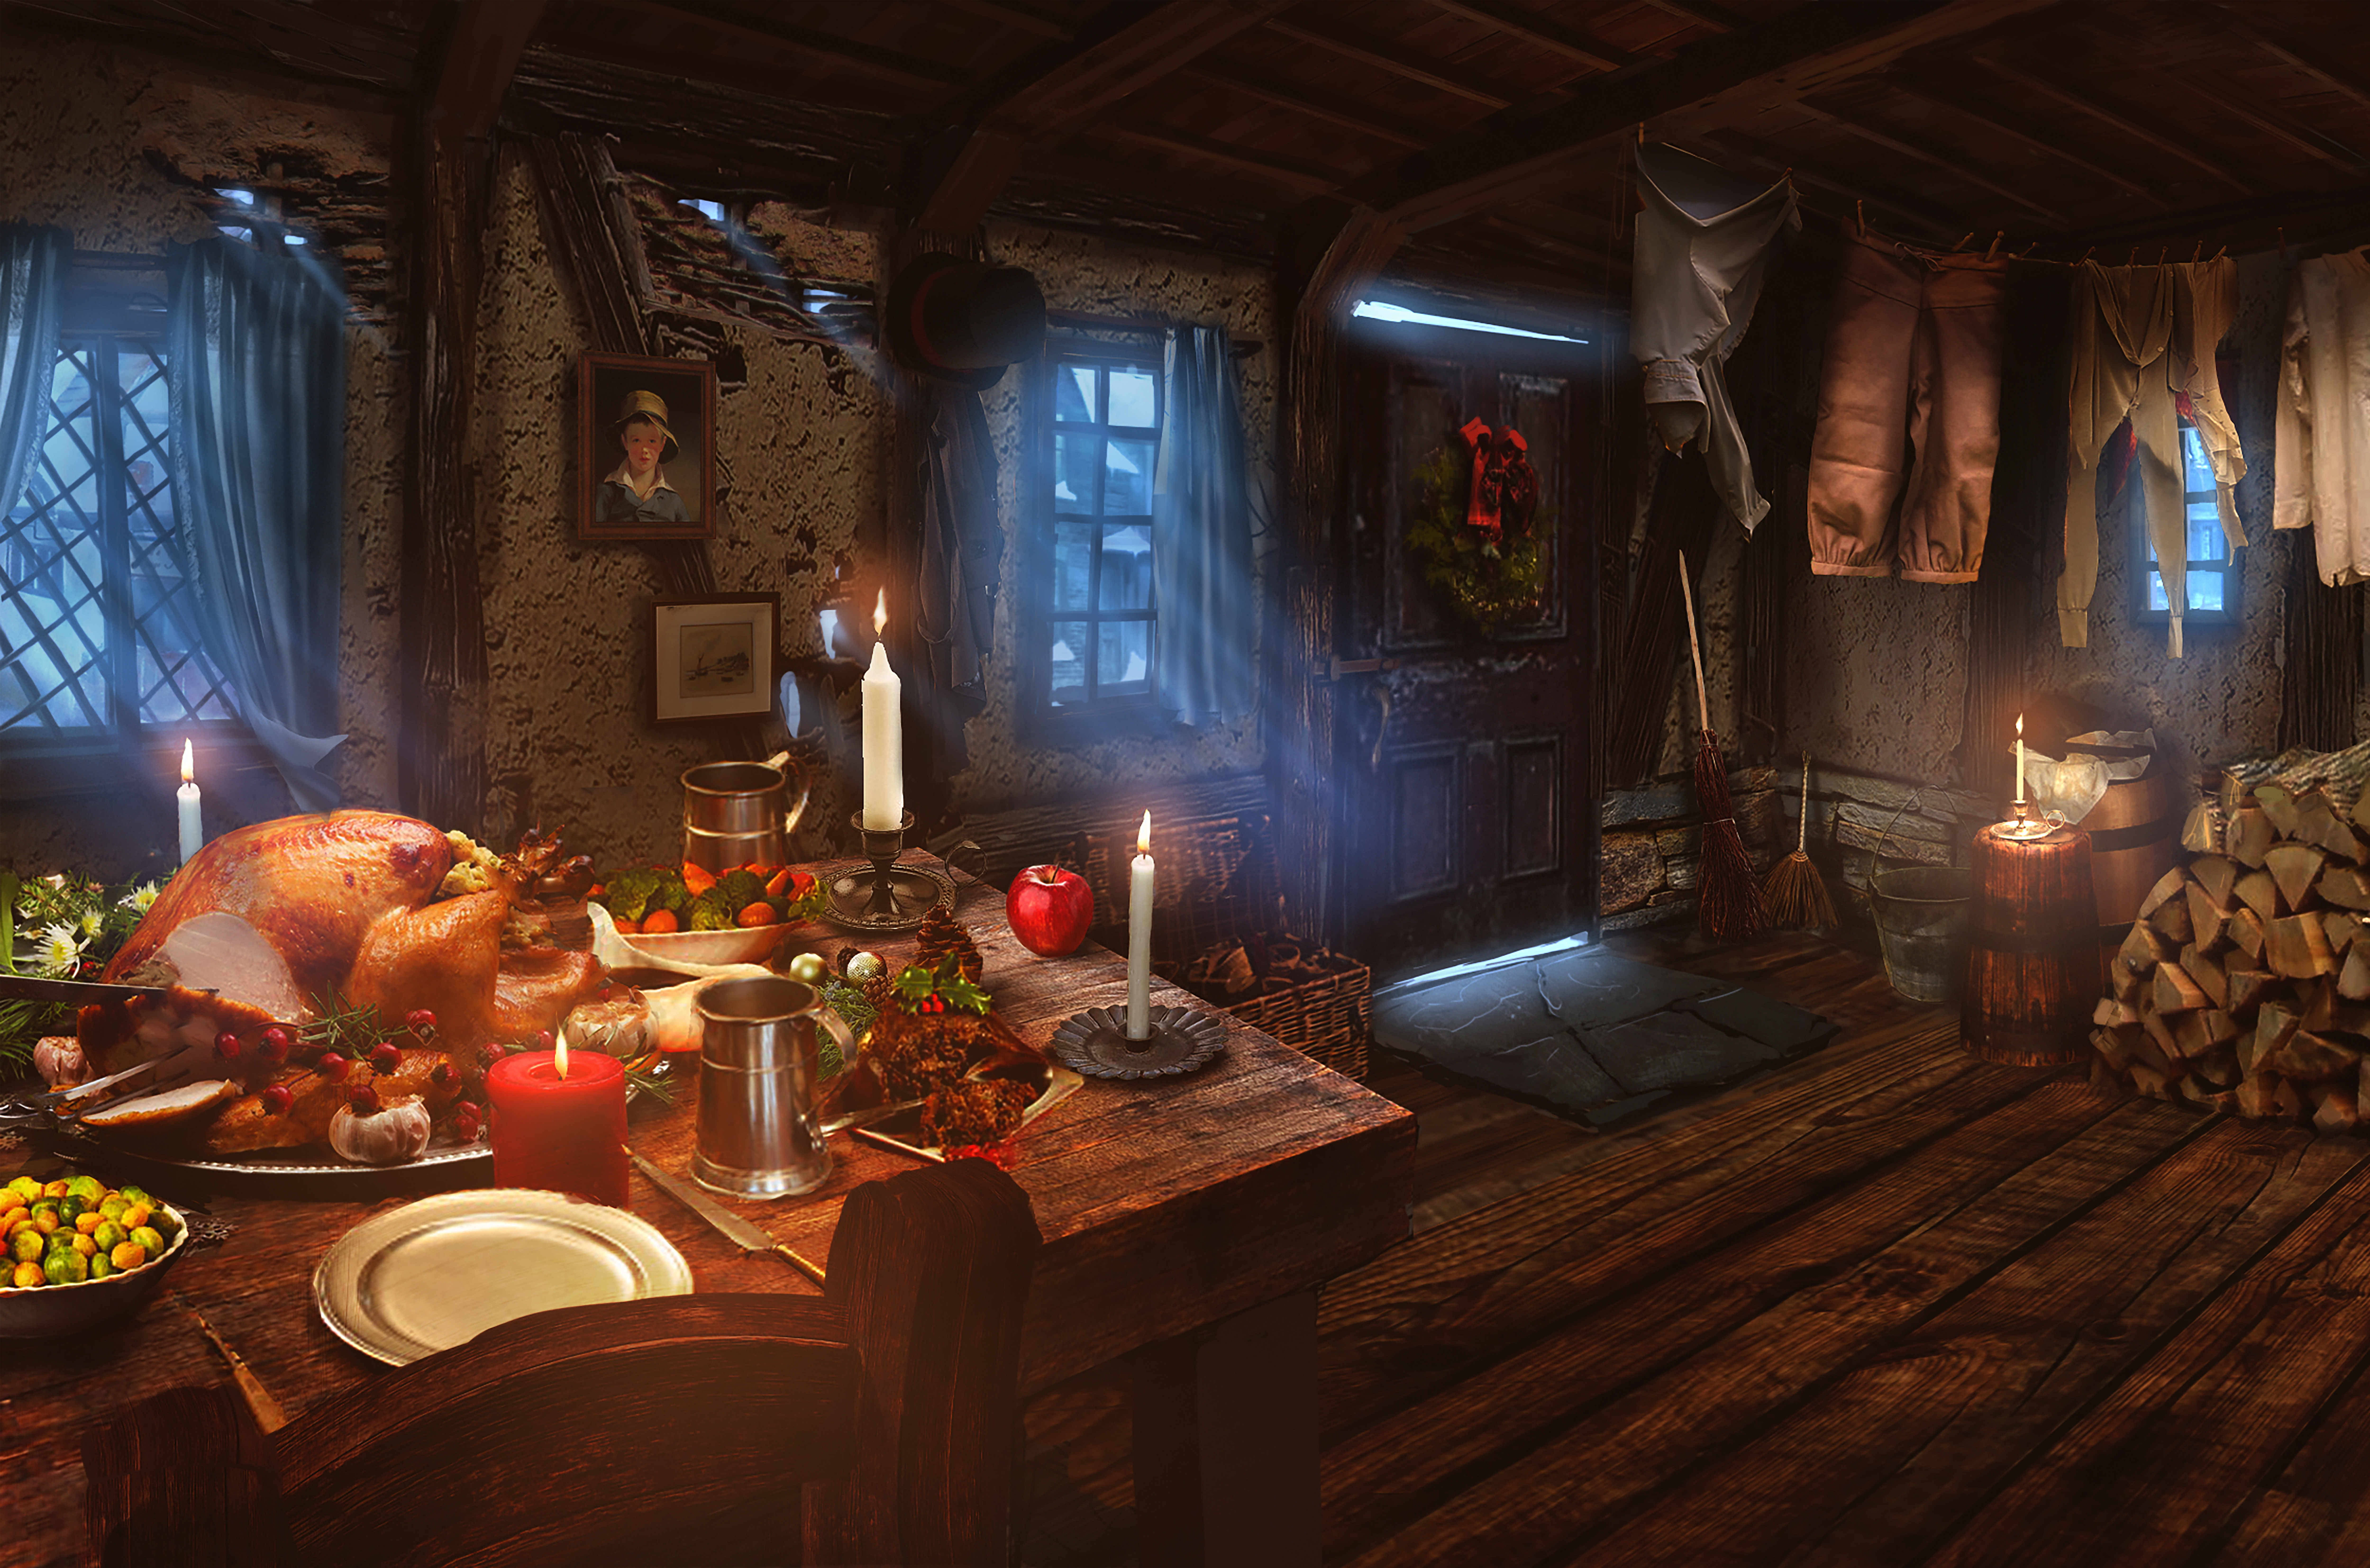 ASC_Chained_CratchitHouse_InteriorView1_v05.jpg